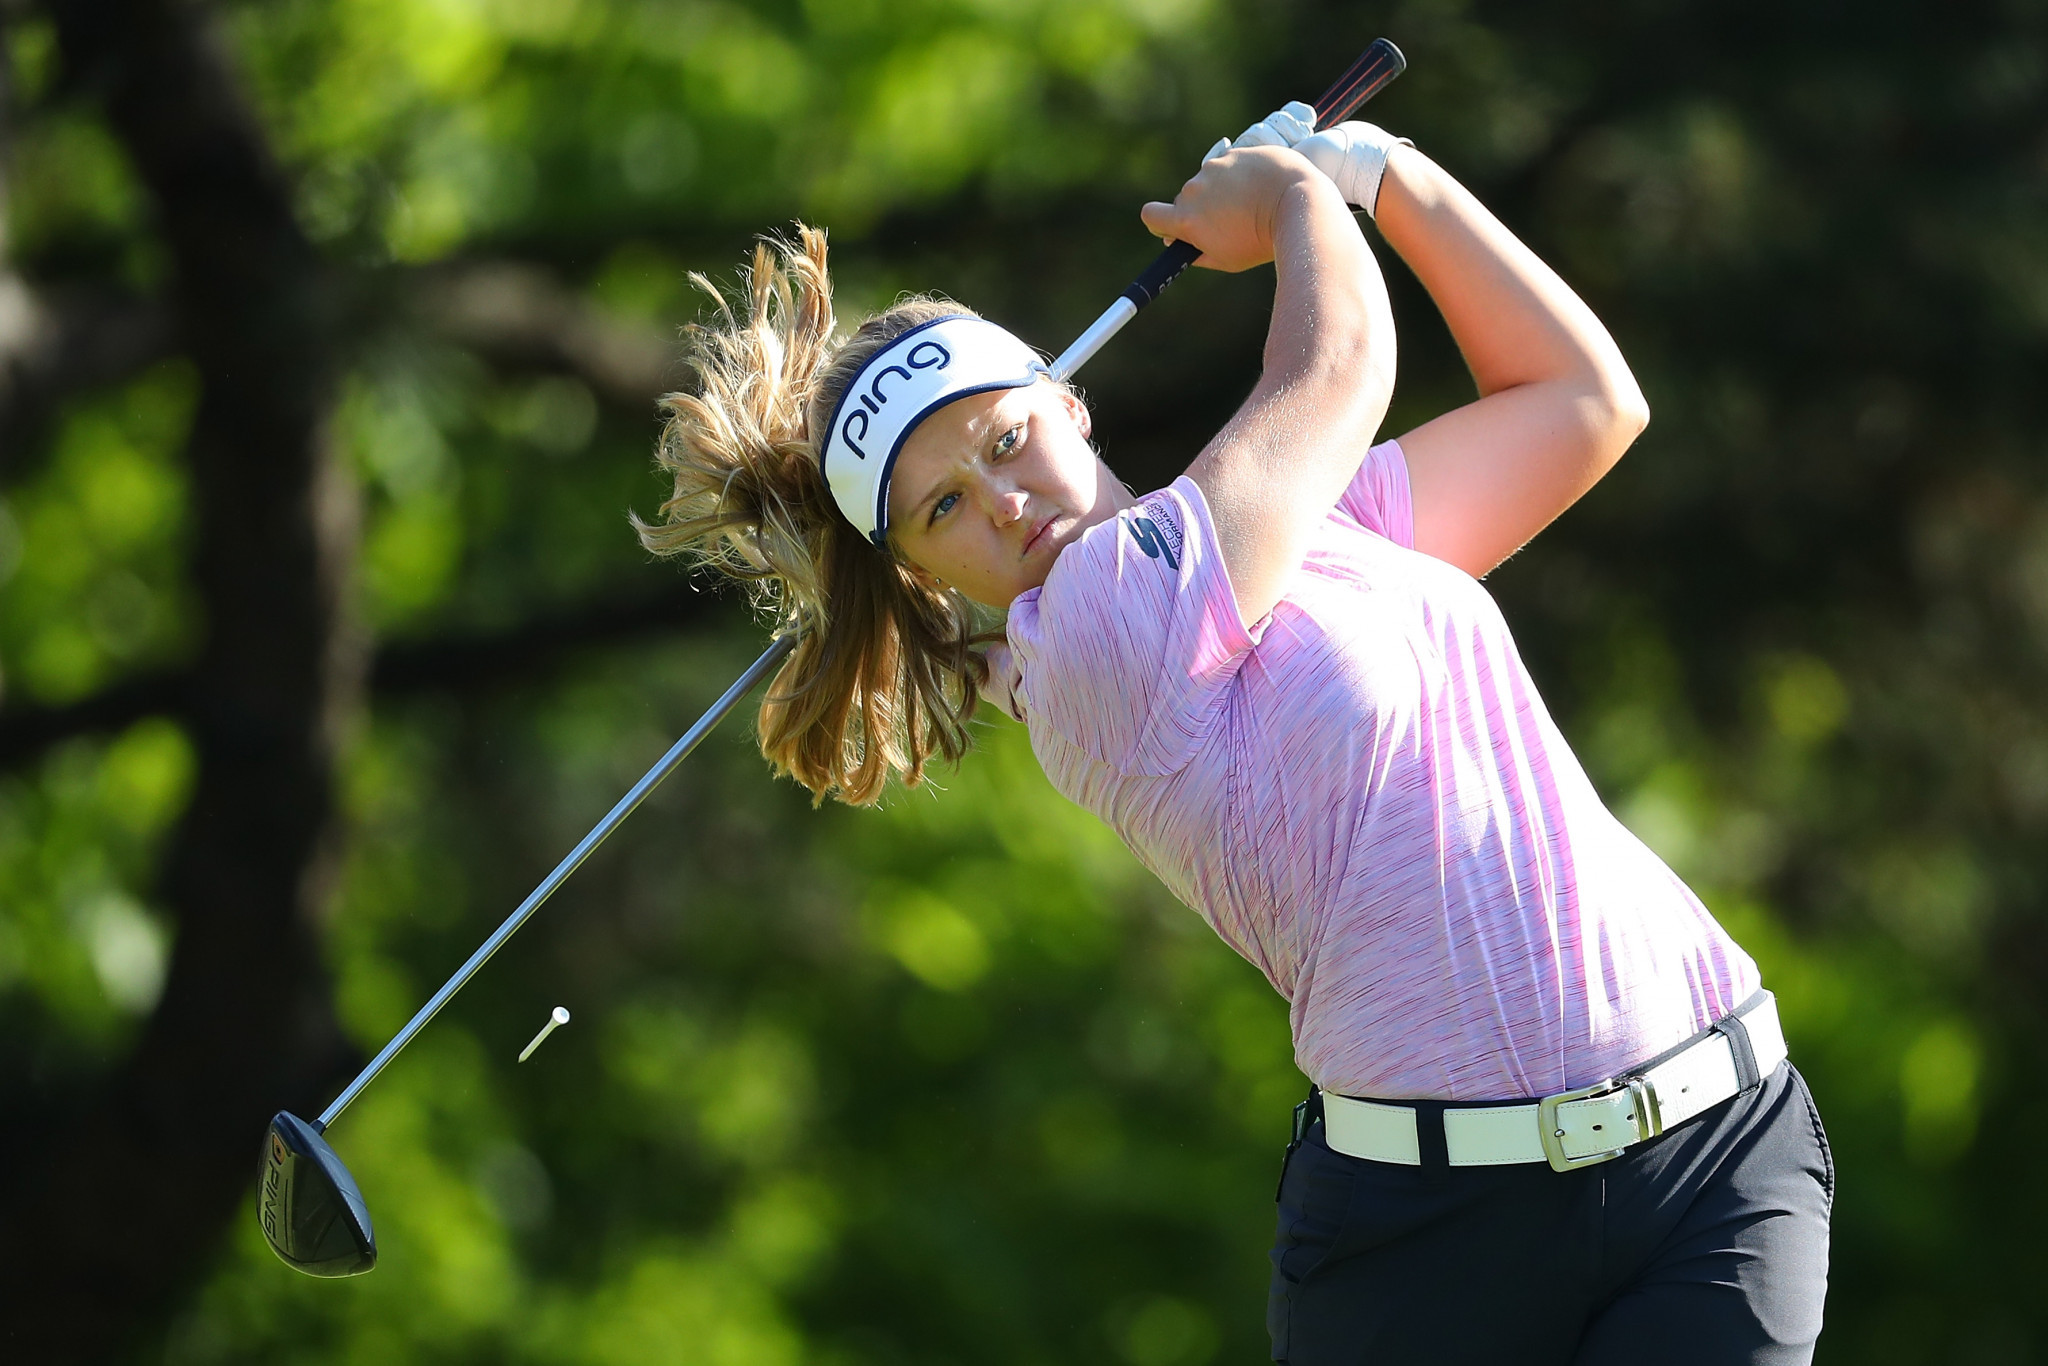 Canada's Brooke Henderson is among the frontrunners ©Getty Images